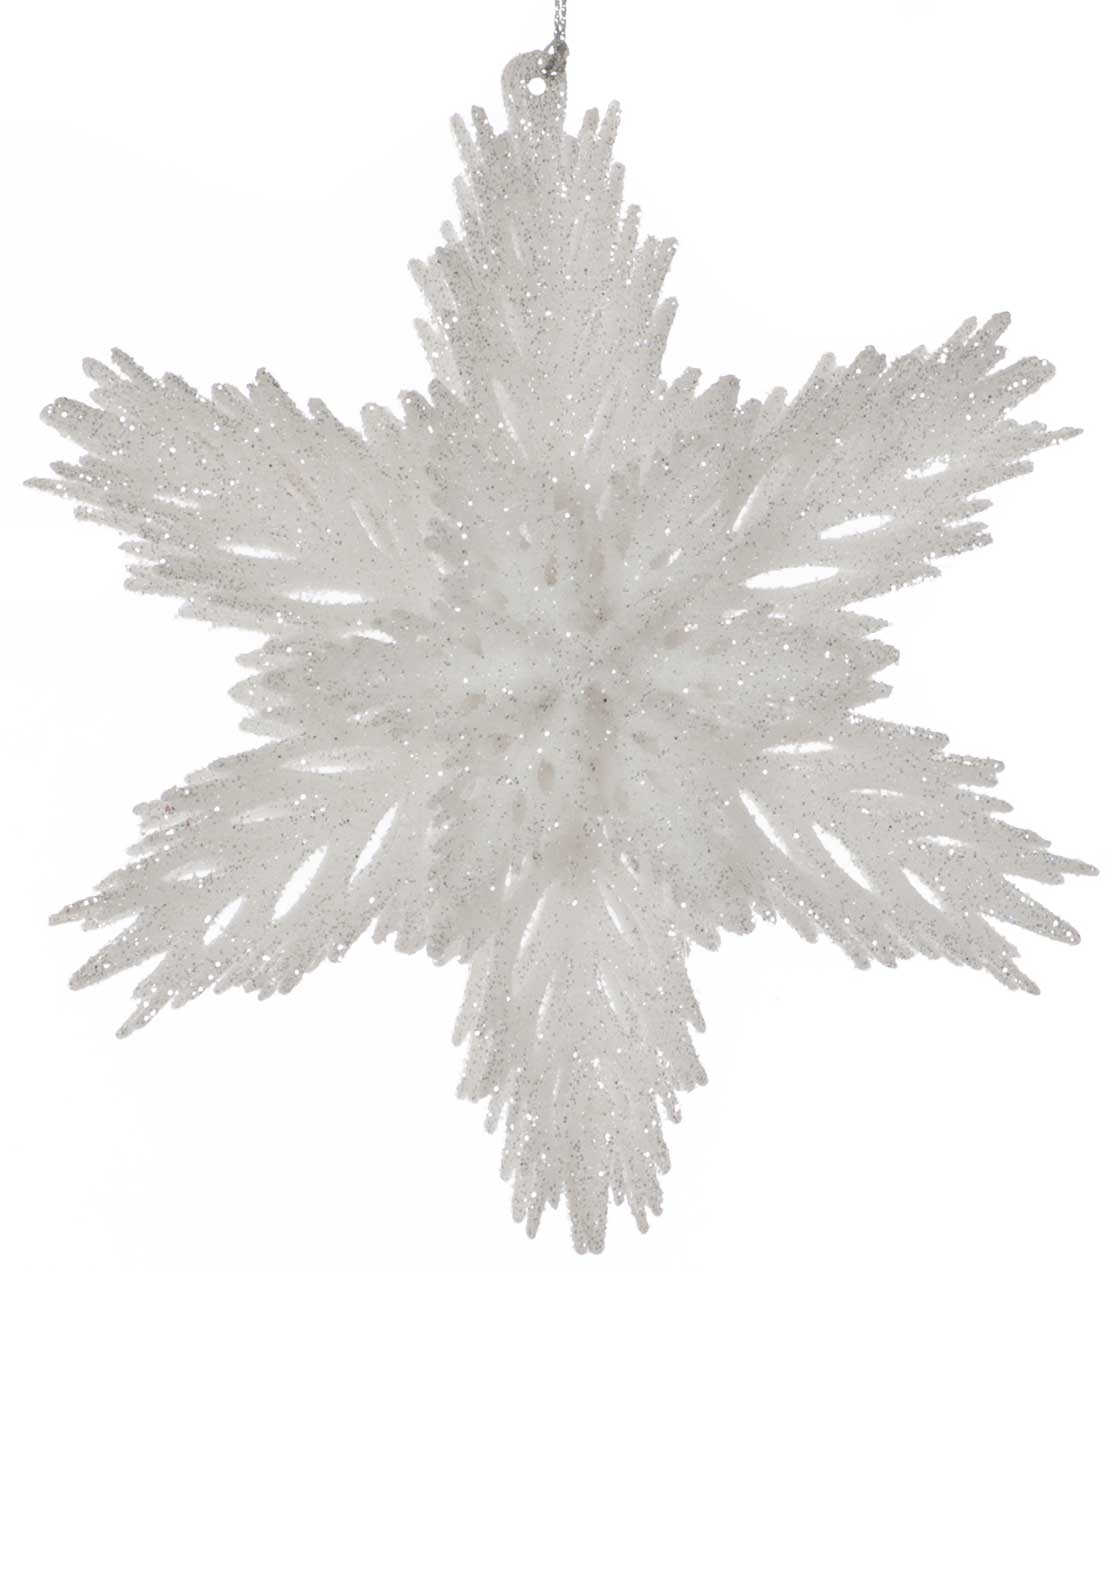 Festive Medium Glitter Star Tree Decoration, White